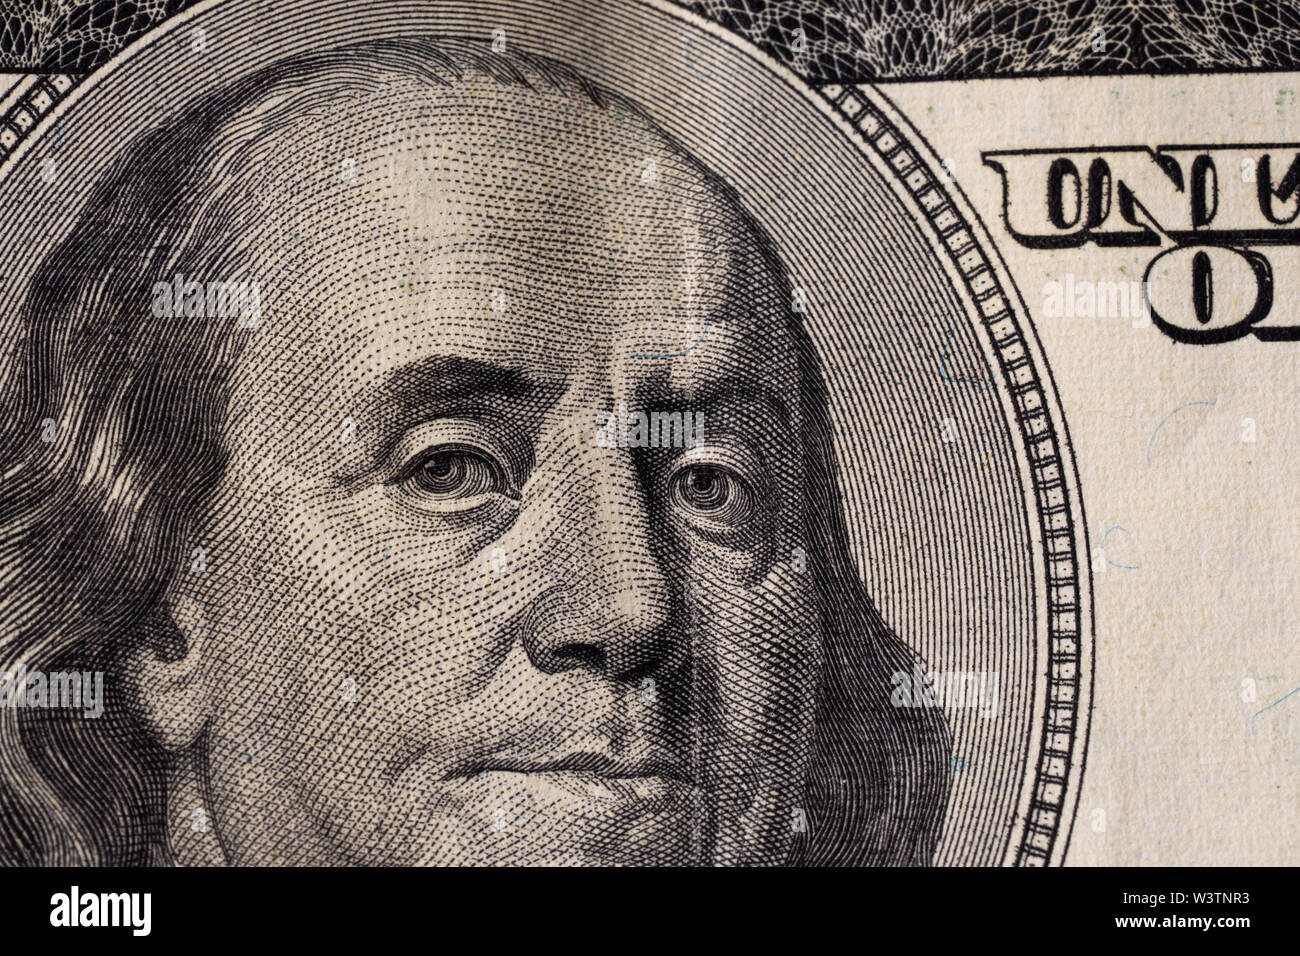 A fragment of a bill of 100 US dollars.Portrait of Benjamin Franklin - Stock Image